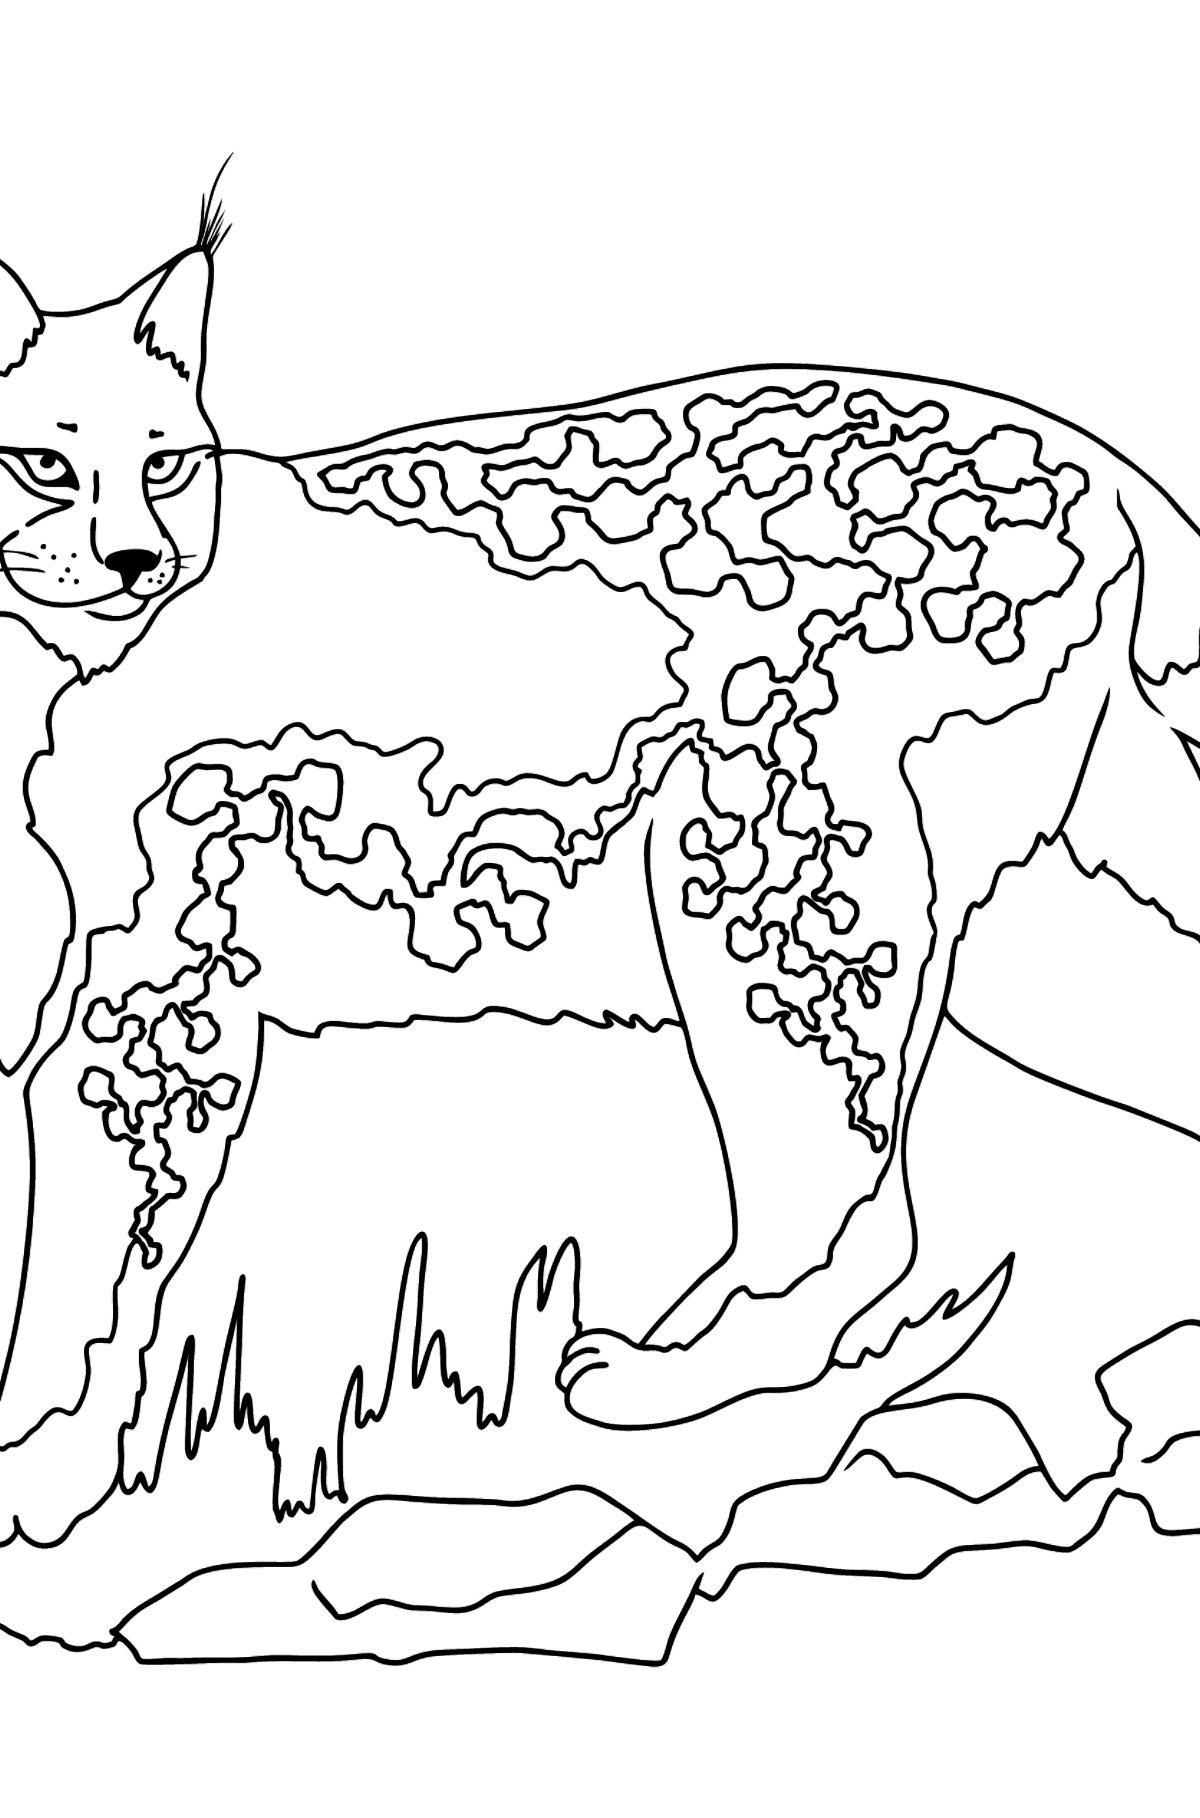 Coloring Page - A Strong Lynx - Coloring Pages for Kids